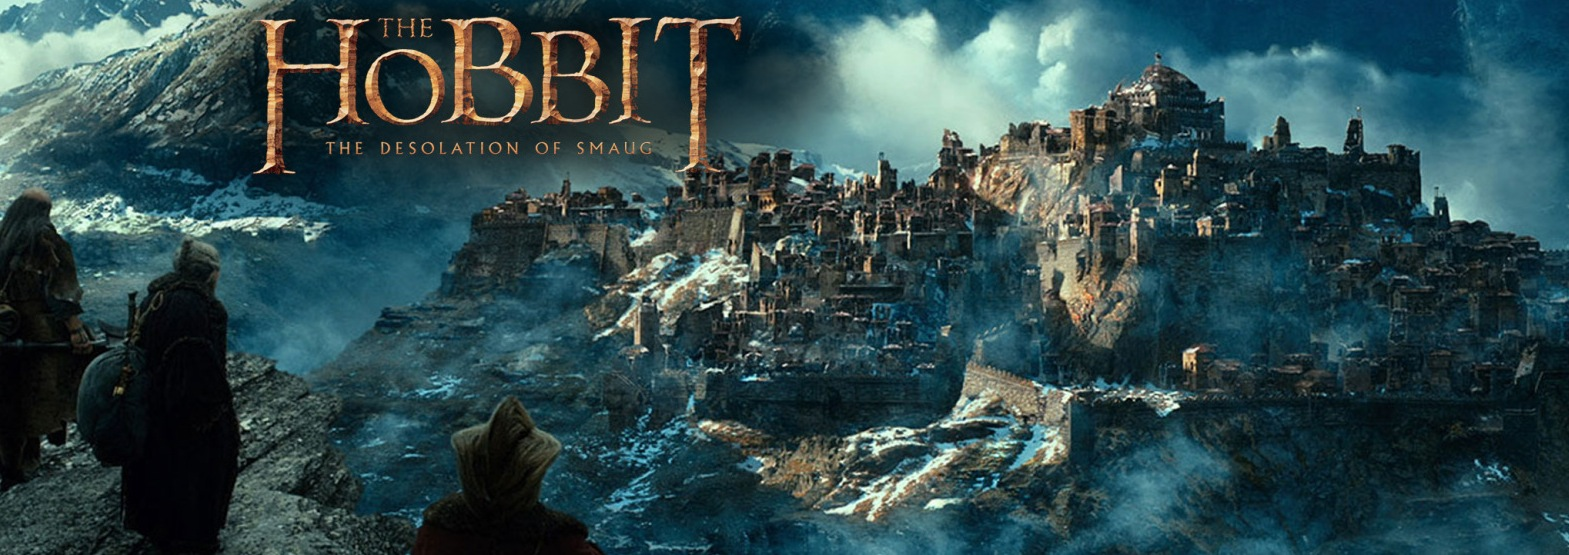 From New Line Cinema Peter Jackson and Warner Bros comes JRR Tolkiens The Hobbit brought to the big screen in an epic trilogy Weta Workshop was thrilled to